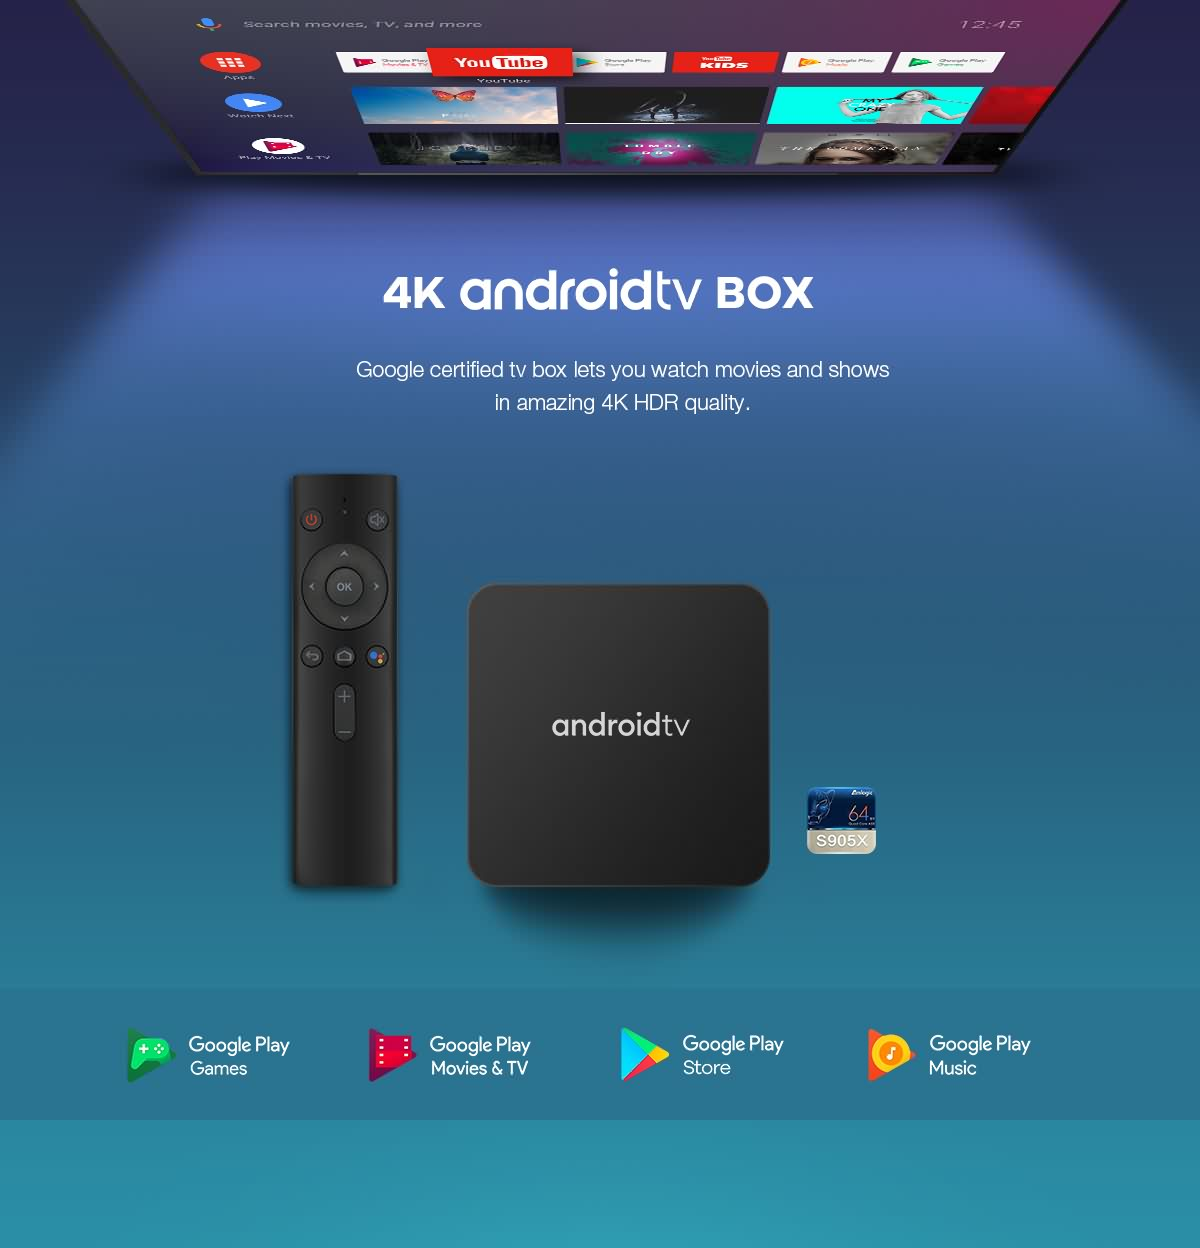 android box with TV tuner DVB-T2 configured by S905D chipset based on android 9.0/10.0 8